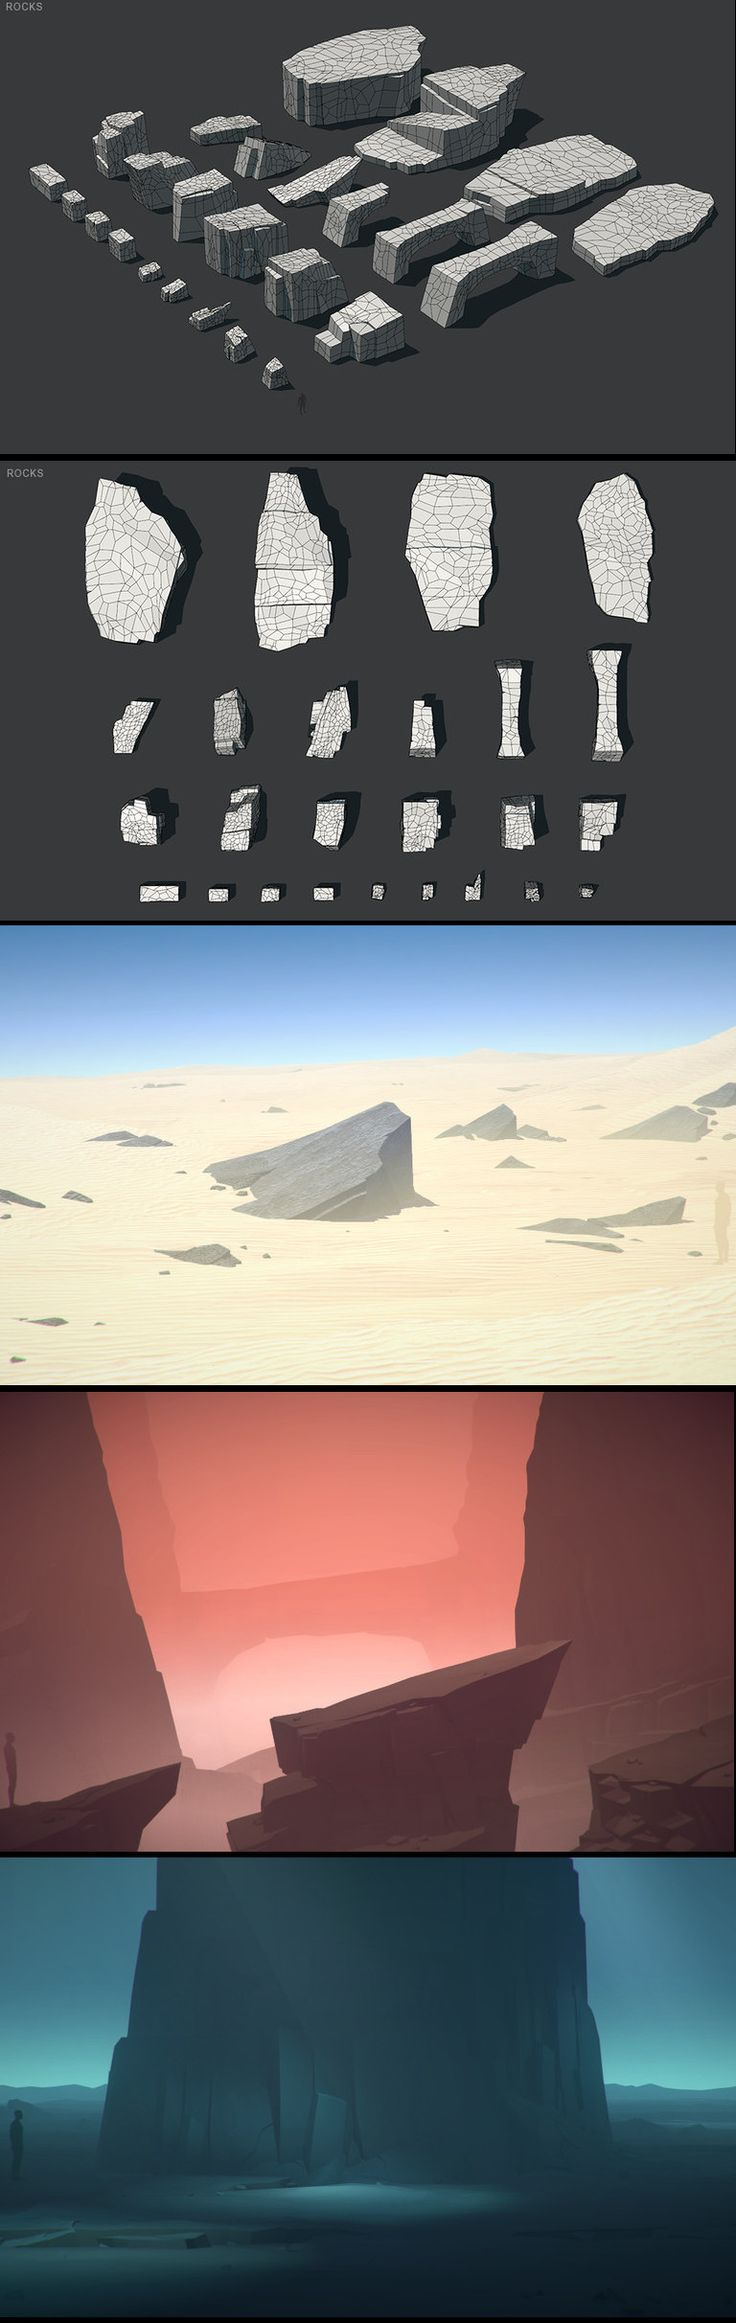 LOW POLY ROCKS • highly optimized, modular & versatile assets • each vertex was carefully placed by hand • more than 45 different high-end models • more than 36 example scenes included • more than 170 detailed screenshots • can achieve all sorts of different looks • ready for low & high-end mobile devices • ready for Oculus, GearVR, Vive, Daydream • great for RPG, FPS & top down games • great for 3D, 2D, 2.5D & isometric games • great for cell shade, toon & illustrative look